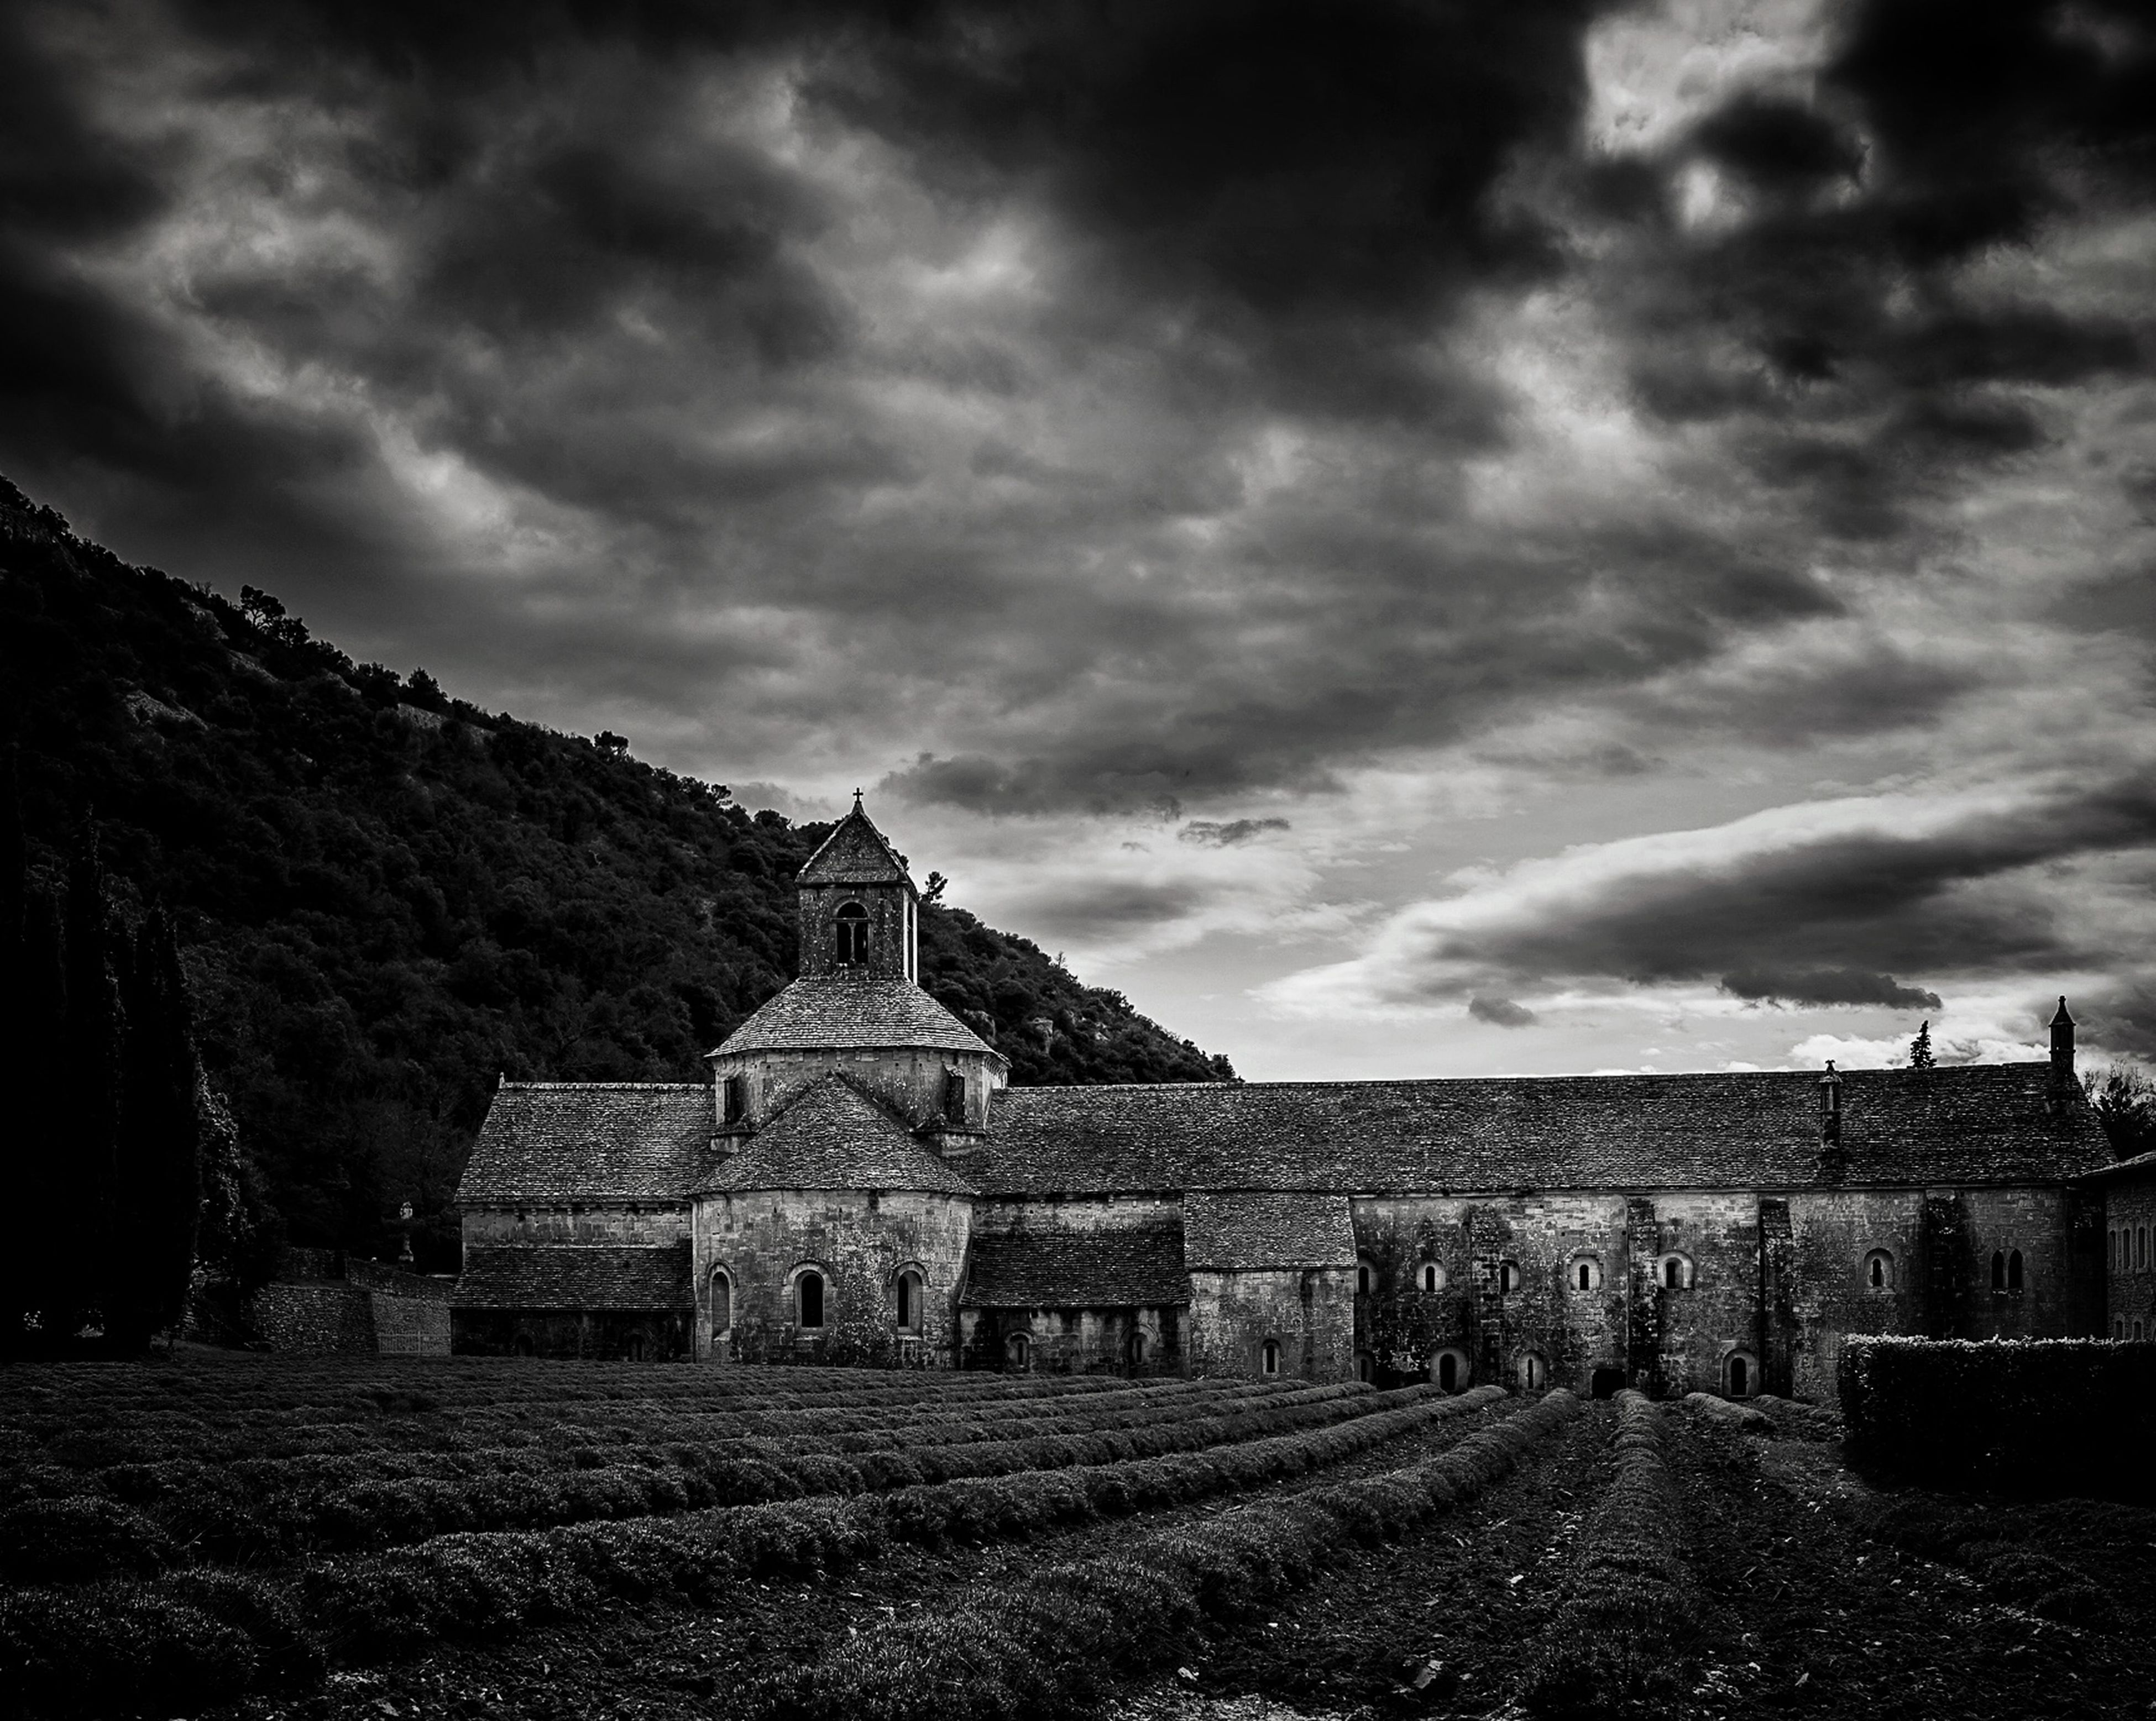 sky, cloud - sky, cloudy, architecture, built structure, building exterior, overcast, weather, landscape, cloud, history, storm cloud, field, old ruin, grass, old, the past, abandoned, nature, day